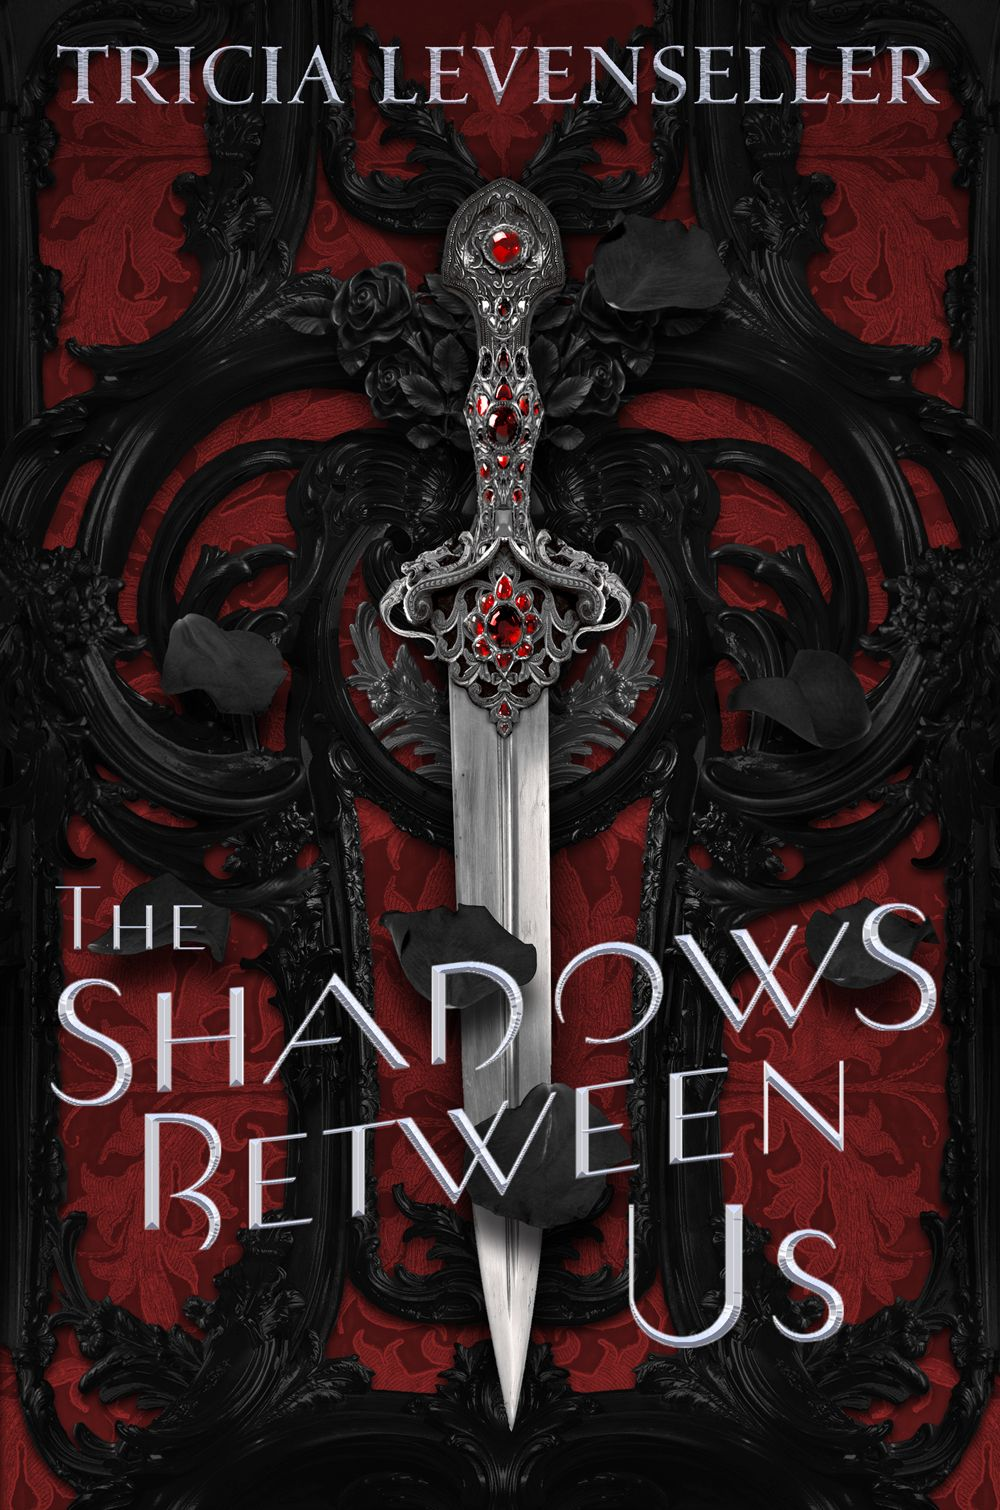 The Shadows Between Us by